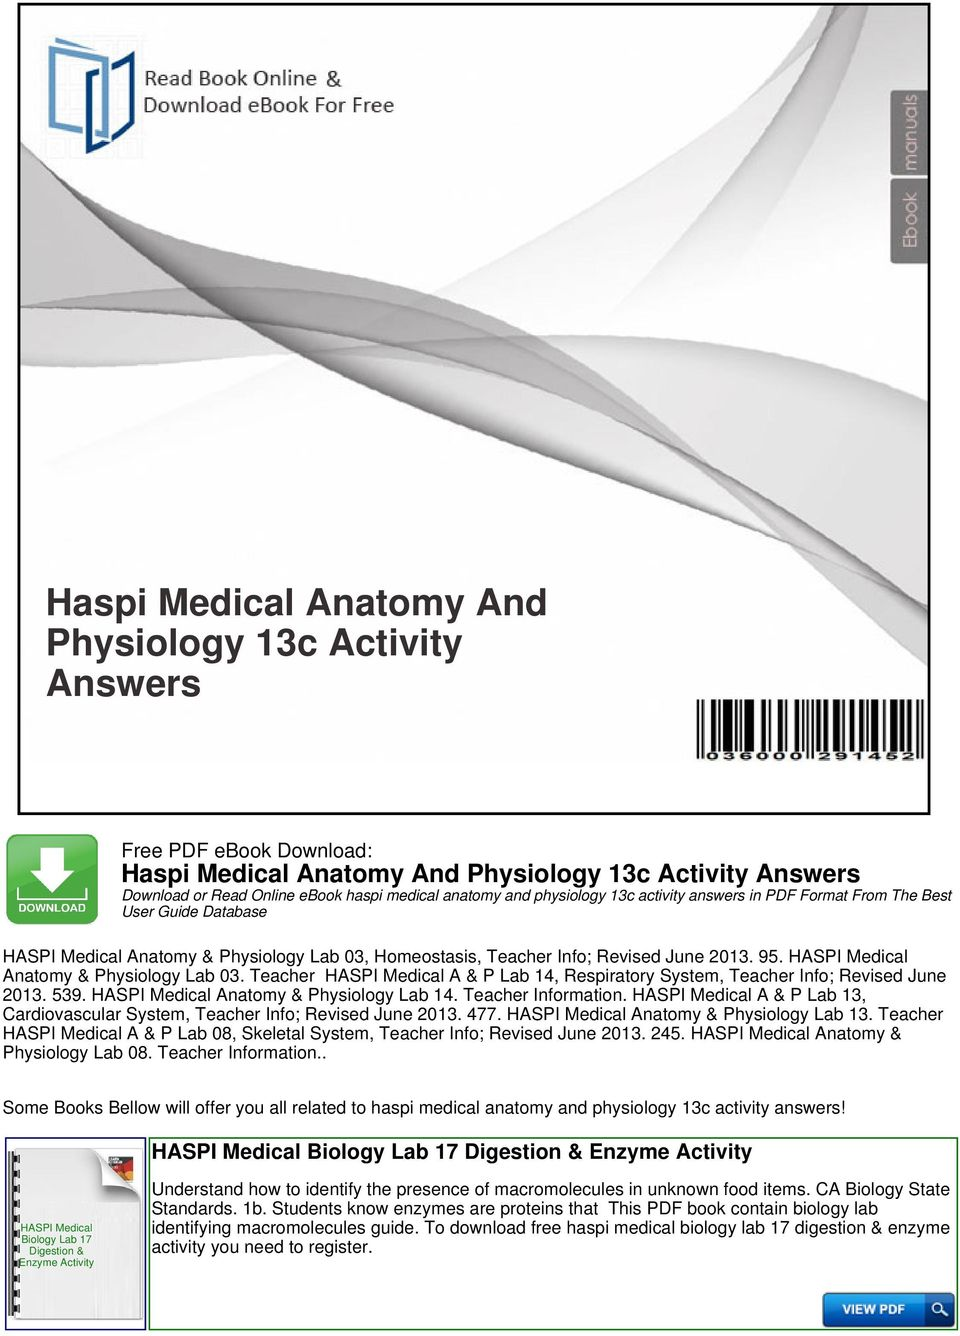 Haspi Medical Anatomy And Physiology 13c Activity Answers - PDF